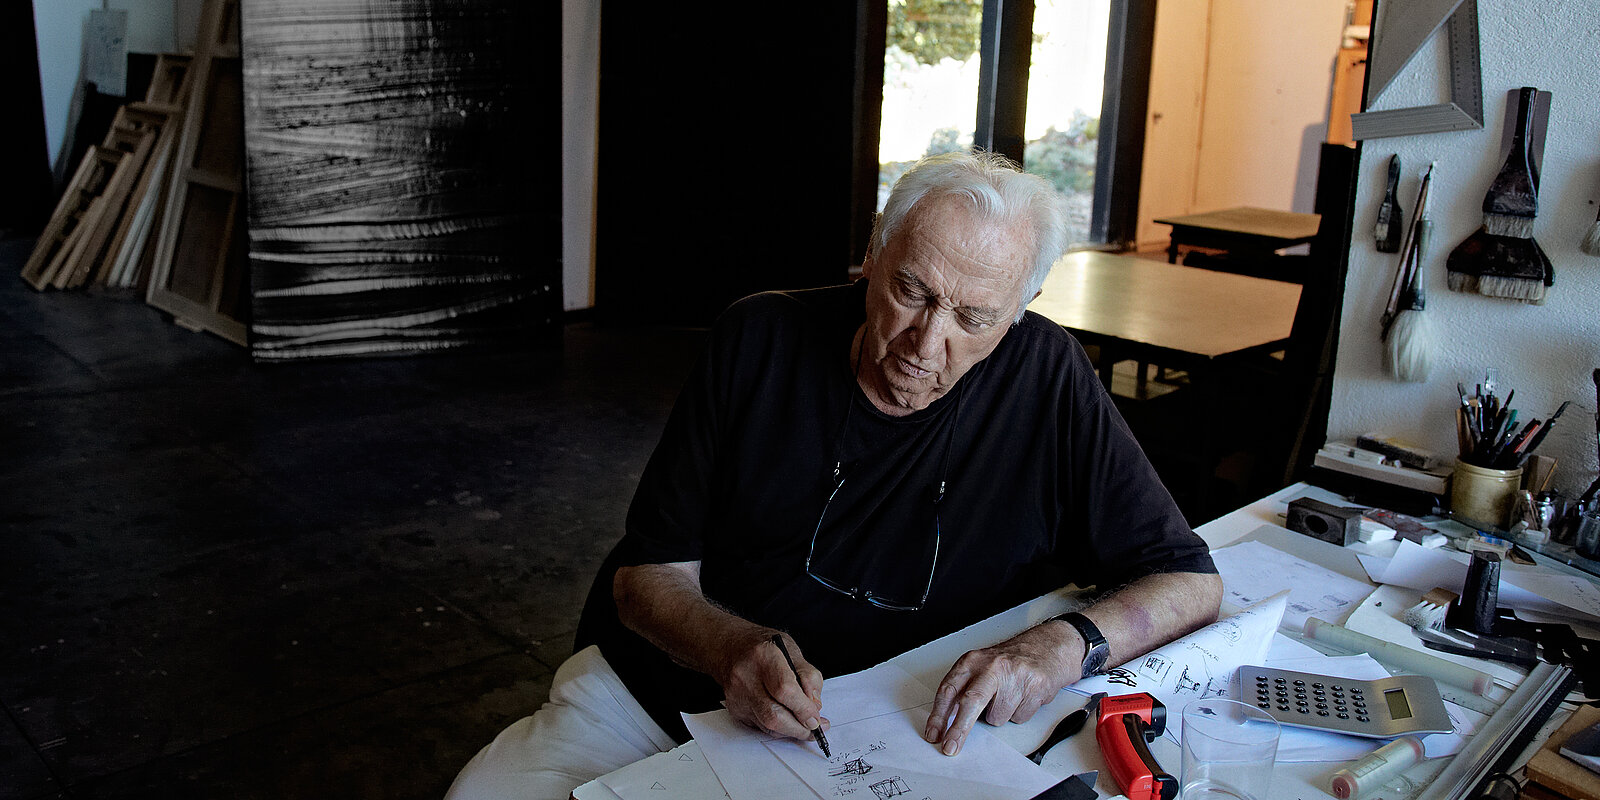 Pierre Soulages in seinem Studio, Paris 2015. Foto: Vincent Cunillère